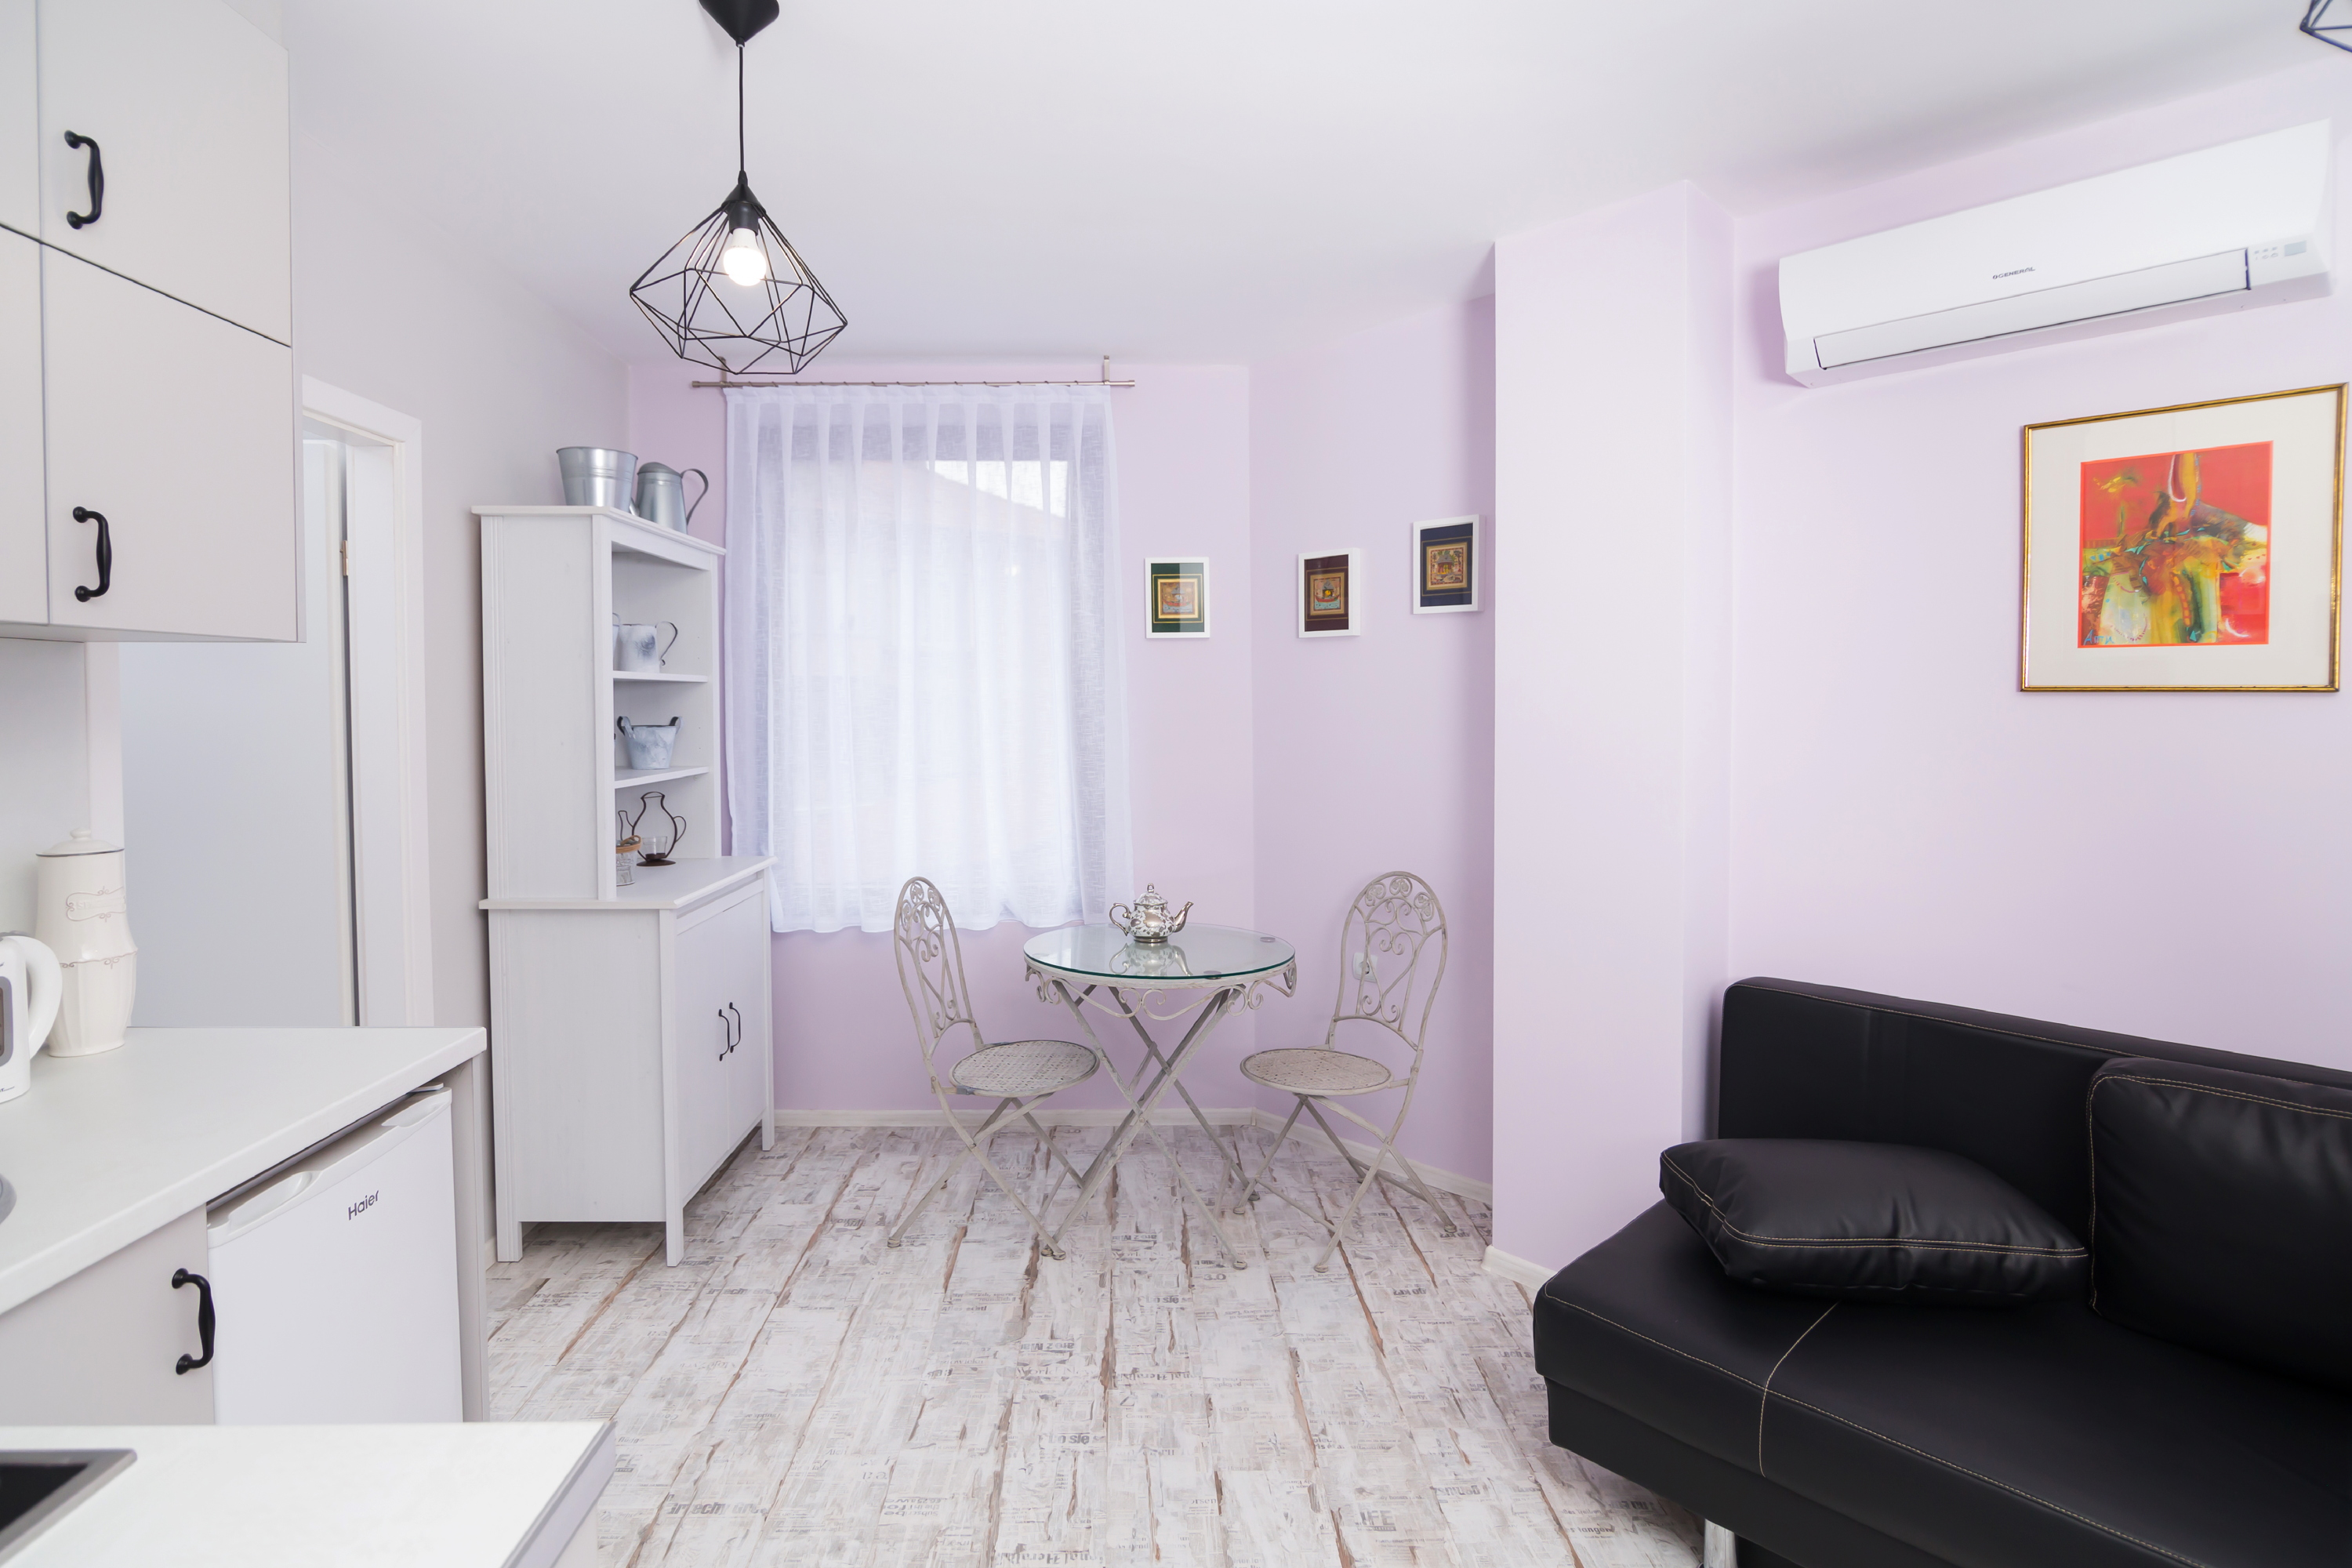 The Best Plovdiv Guide Recommends Stylish Apartment Plovdiv Not Only  Because Of Its Comfort And Location. The Residence Is Located In An  Extremely Quiet And ...